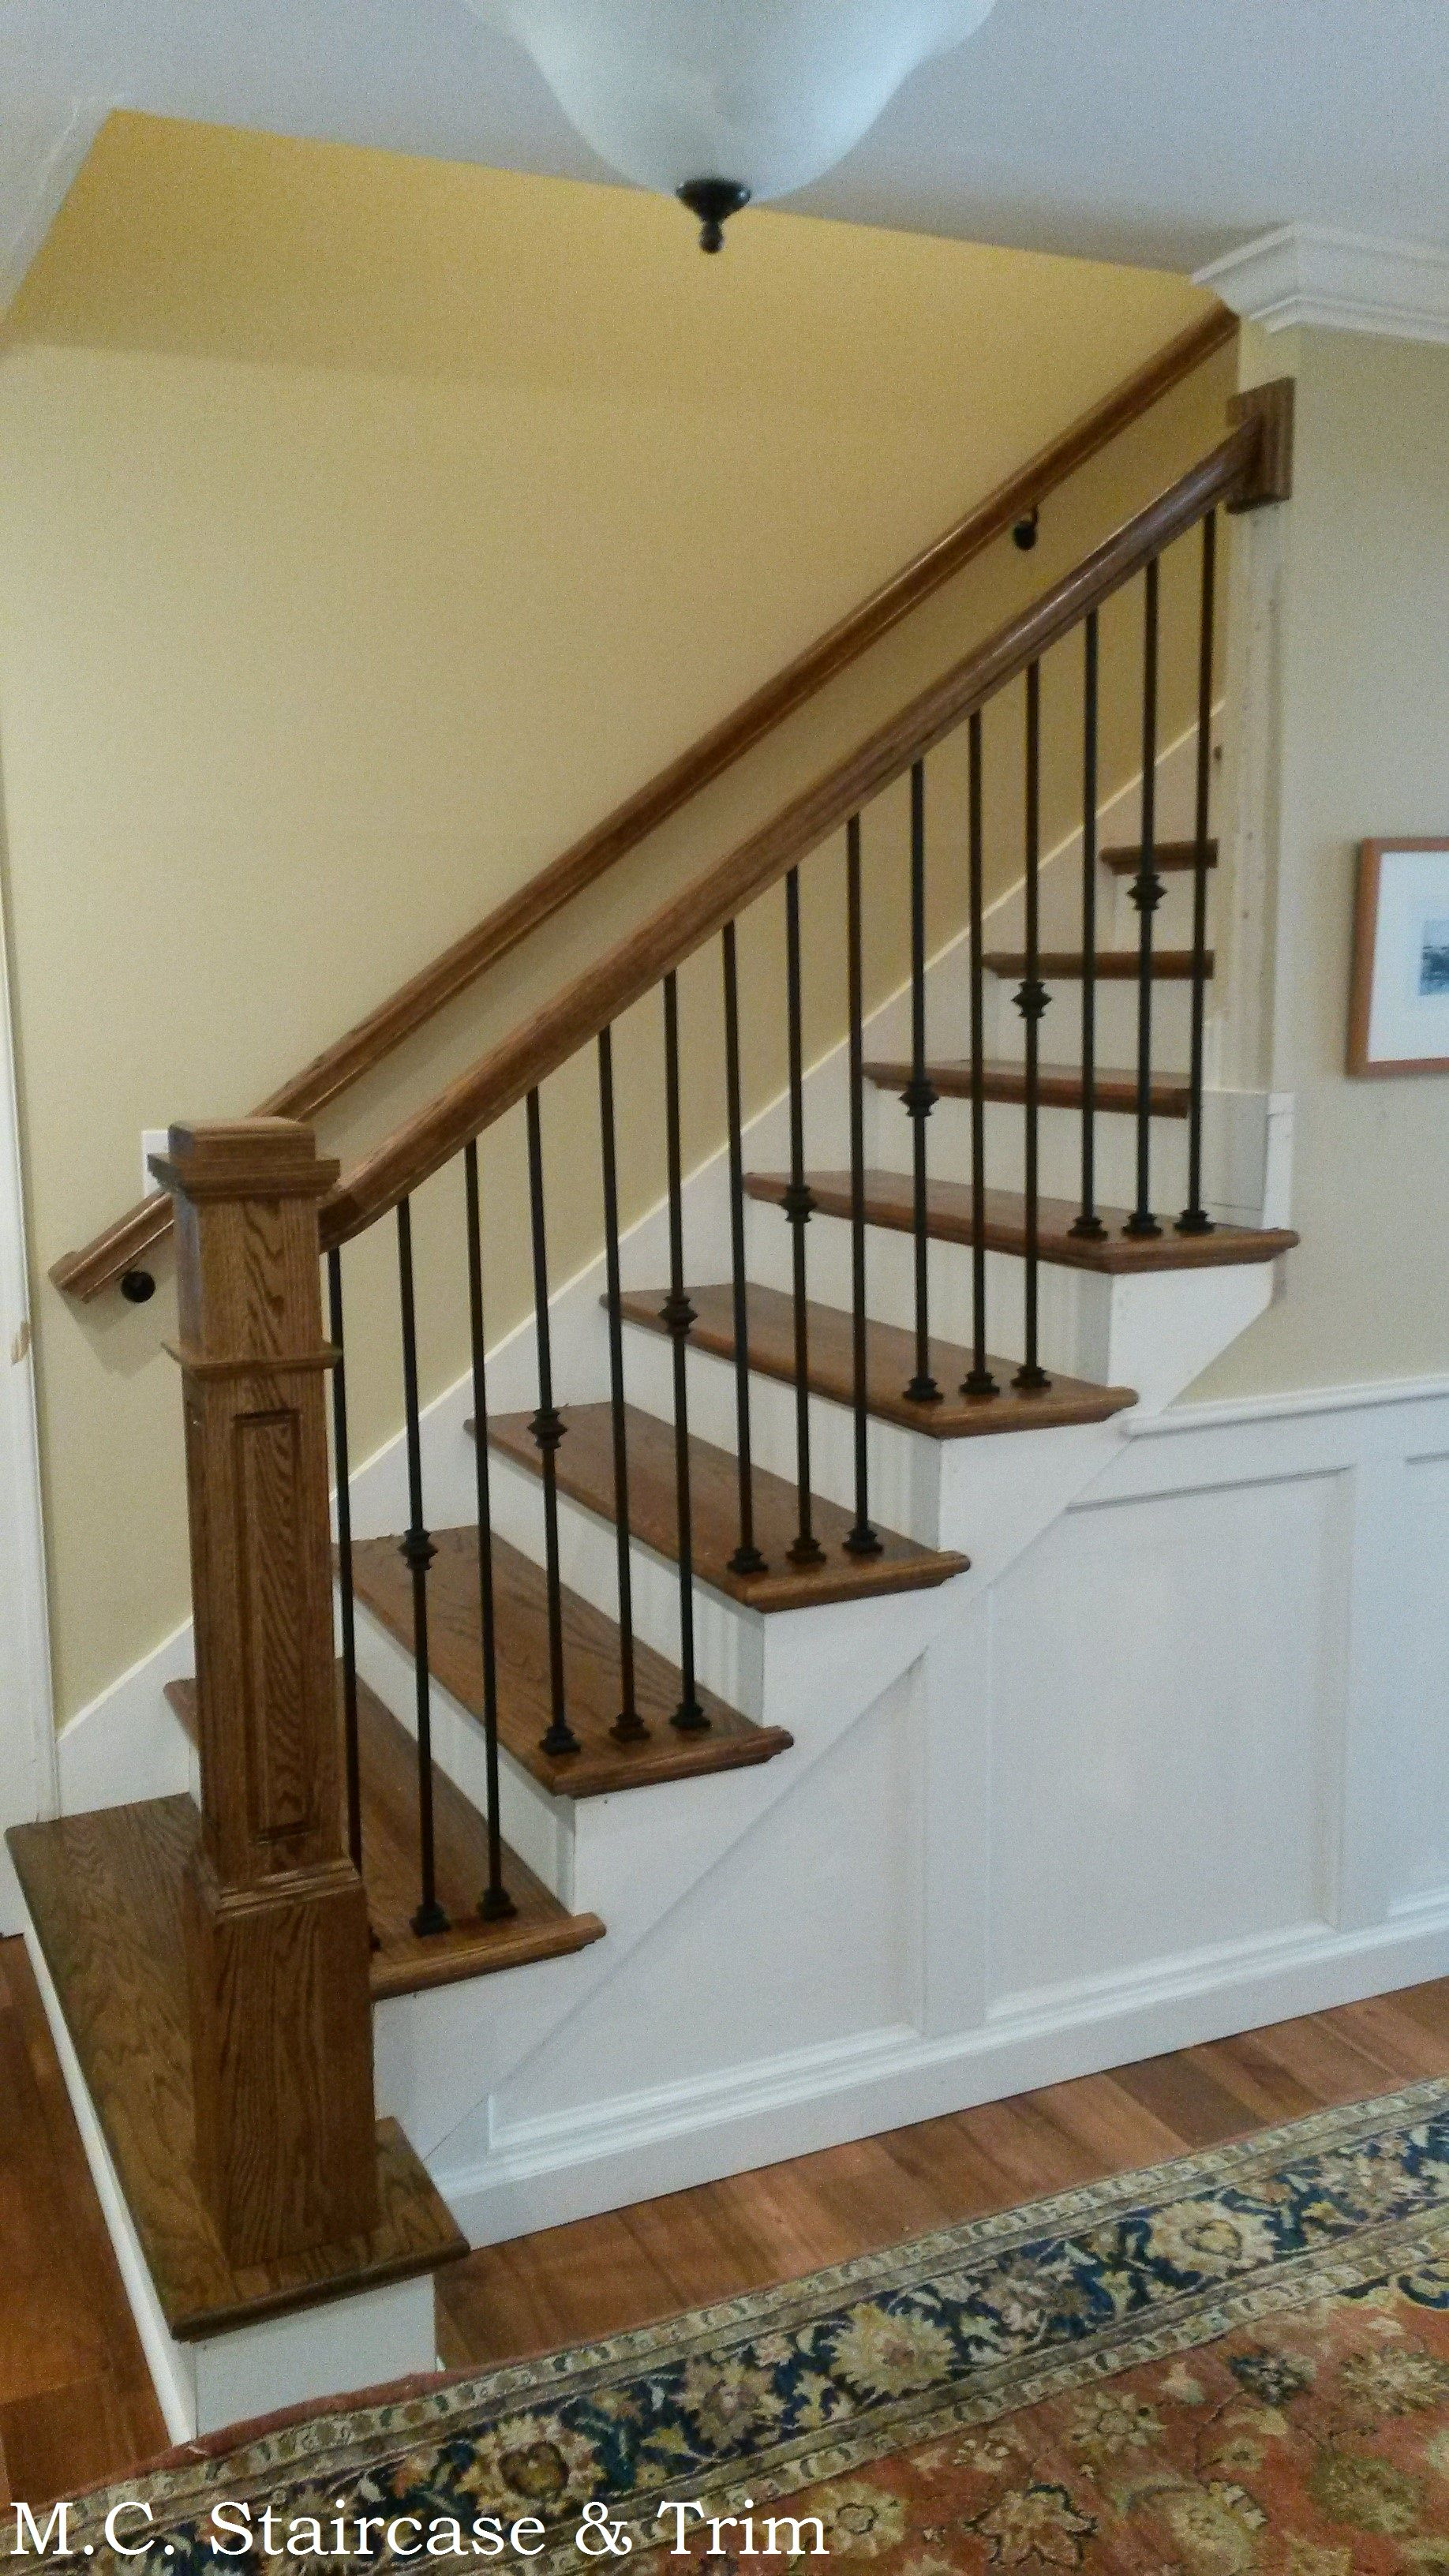 Staircase Remodel From M.C. Staircase U0026 Trim. Removal Of Old Treads, Wooden  Balusters,